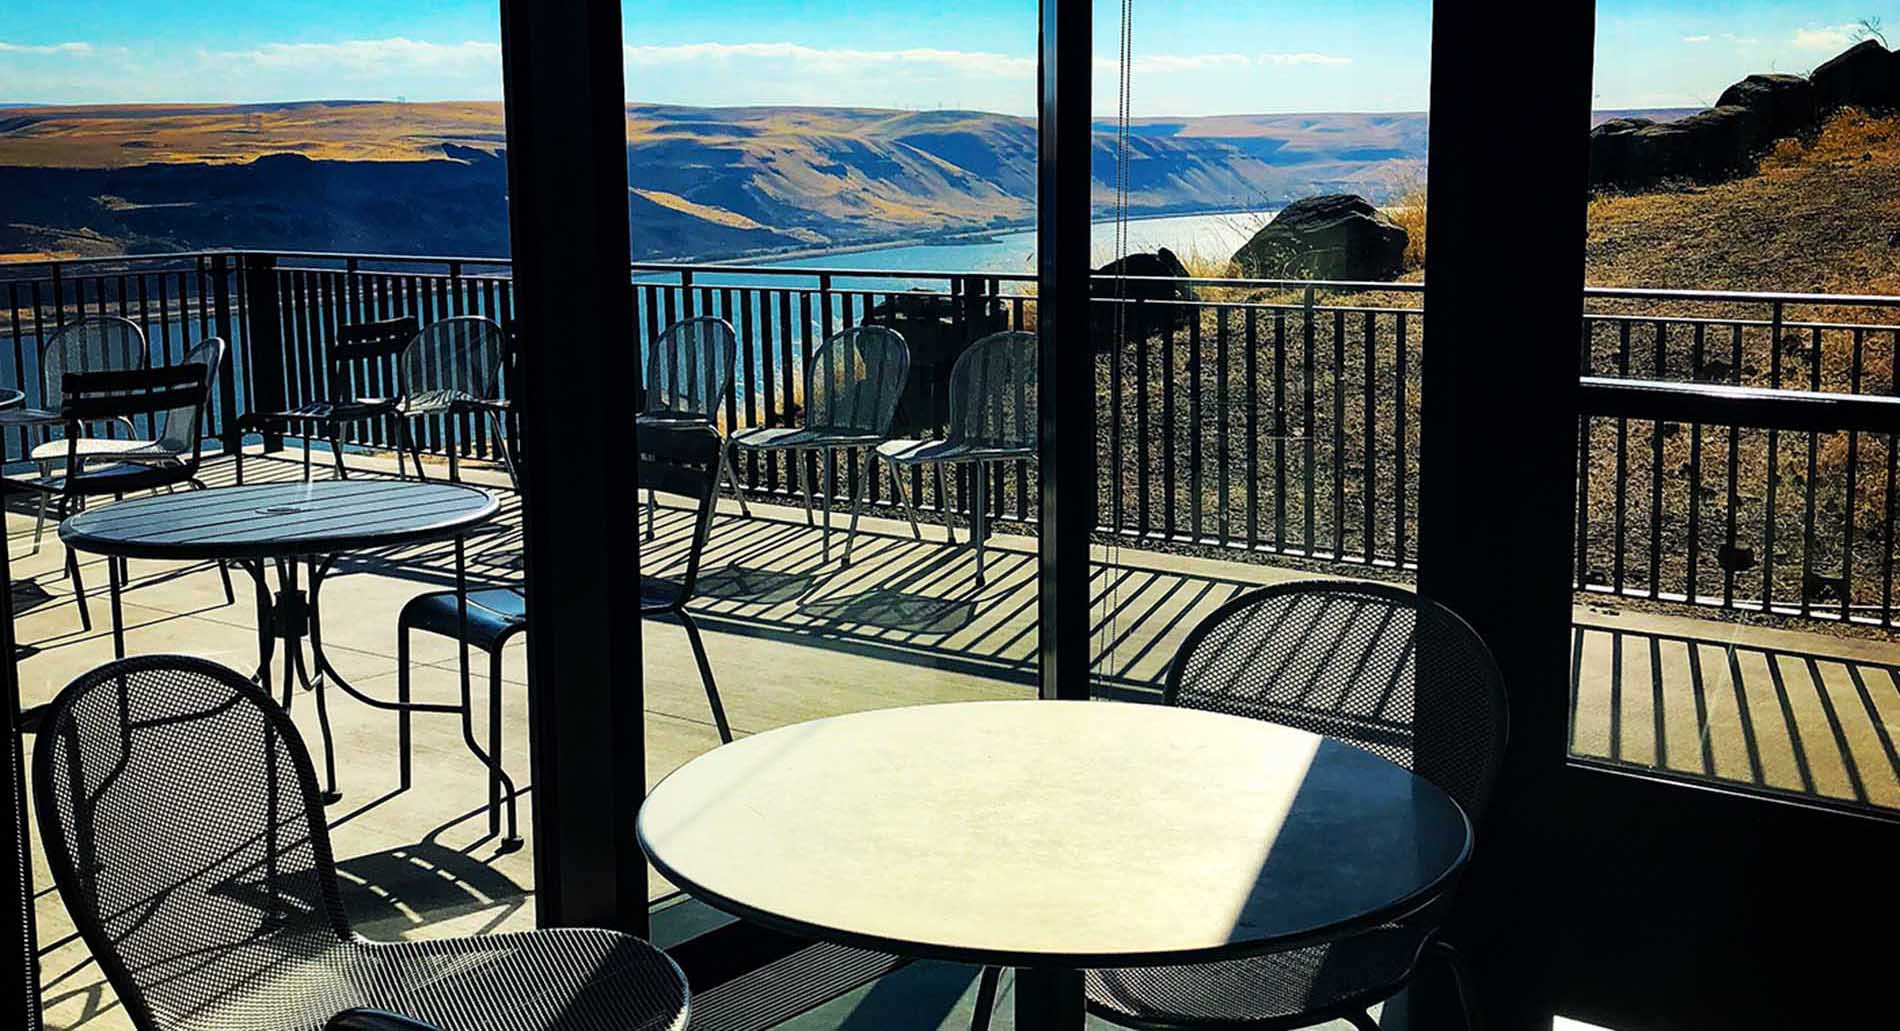 36 Hours in the Gorge - Maryhill Museum - Columbia Gorge